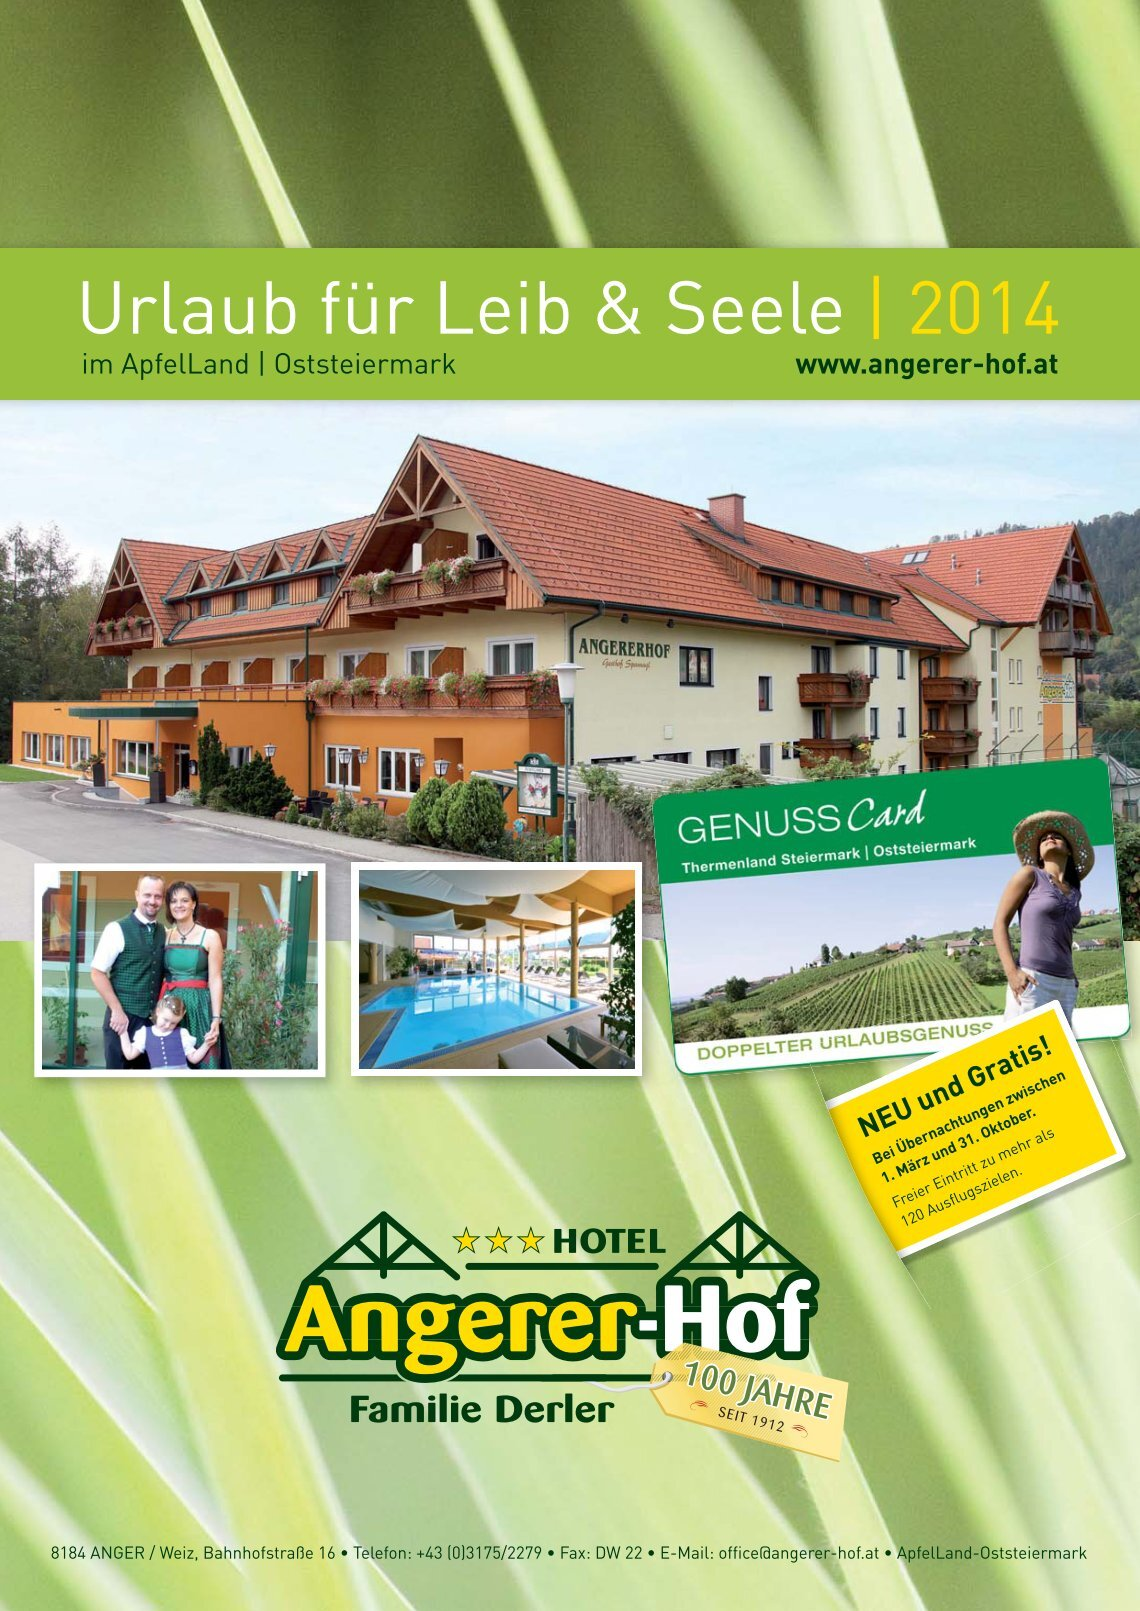 Home Office Urlaubsanspruch 2 Free Magazines From Angerer Hof At